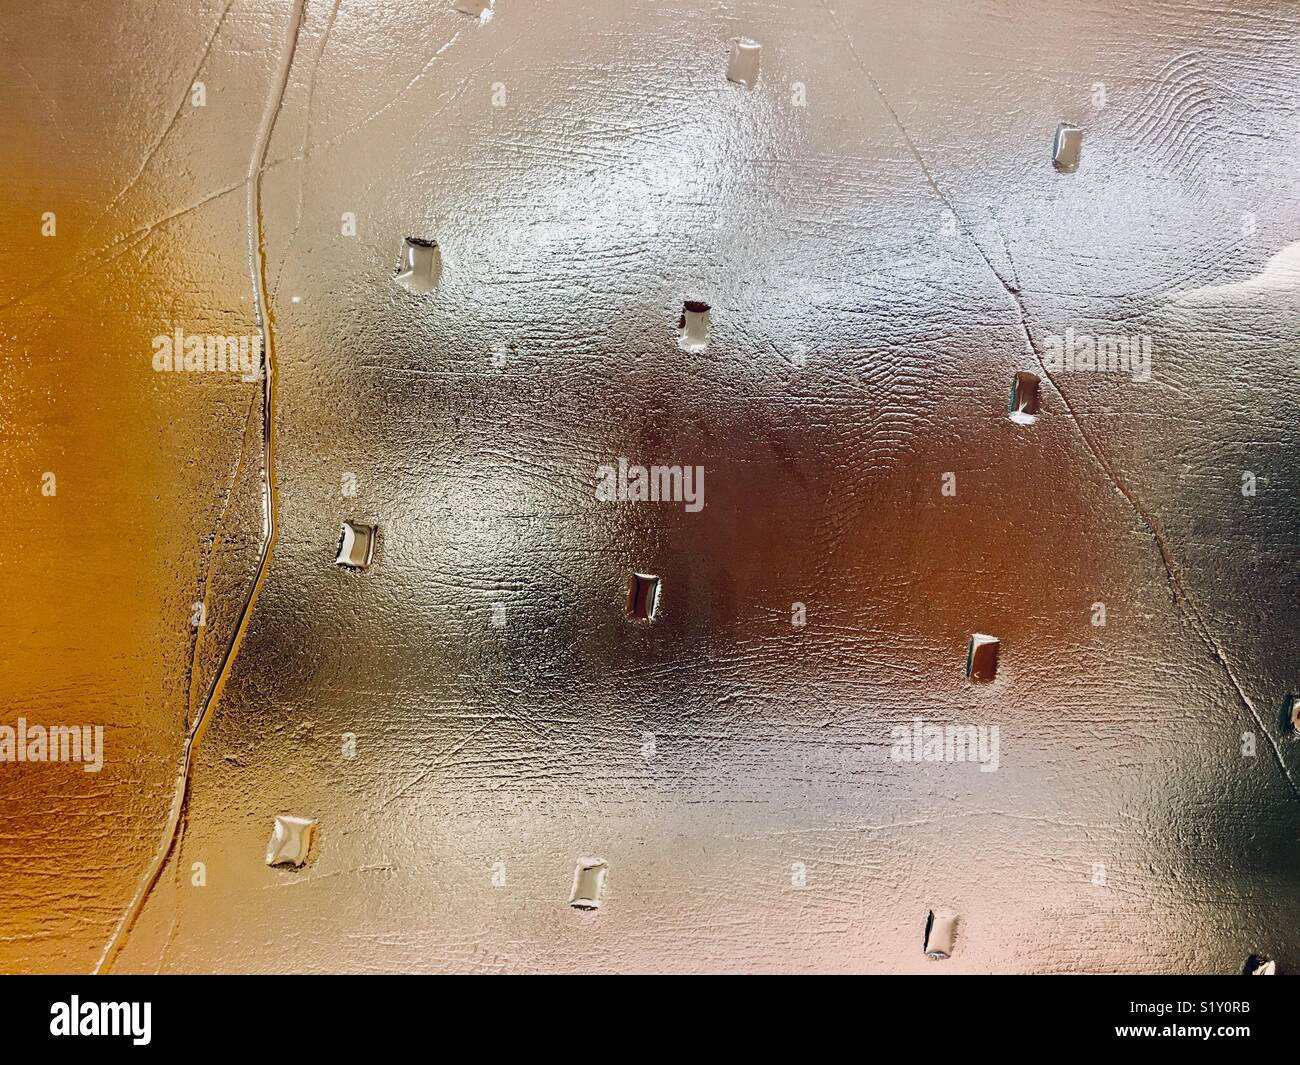 View through patterned opaque glass - Stock Image